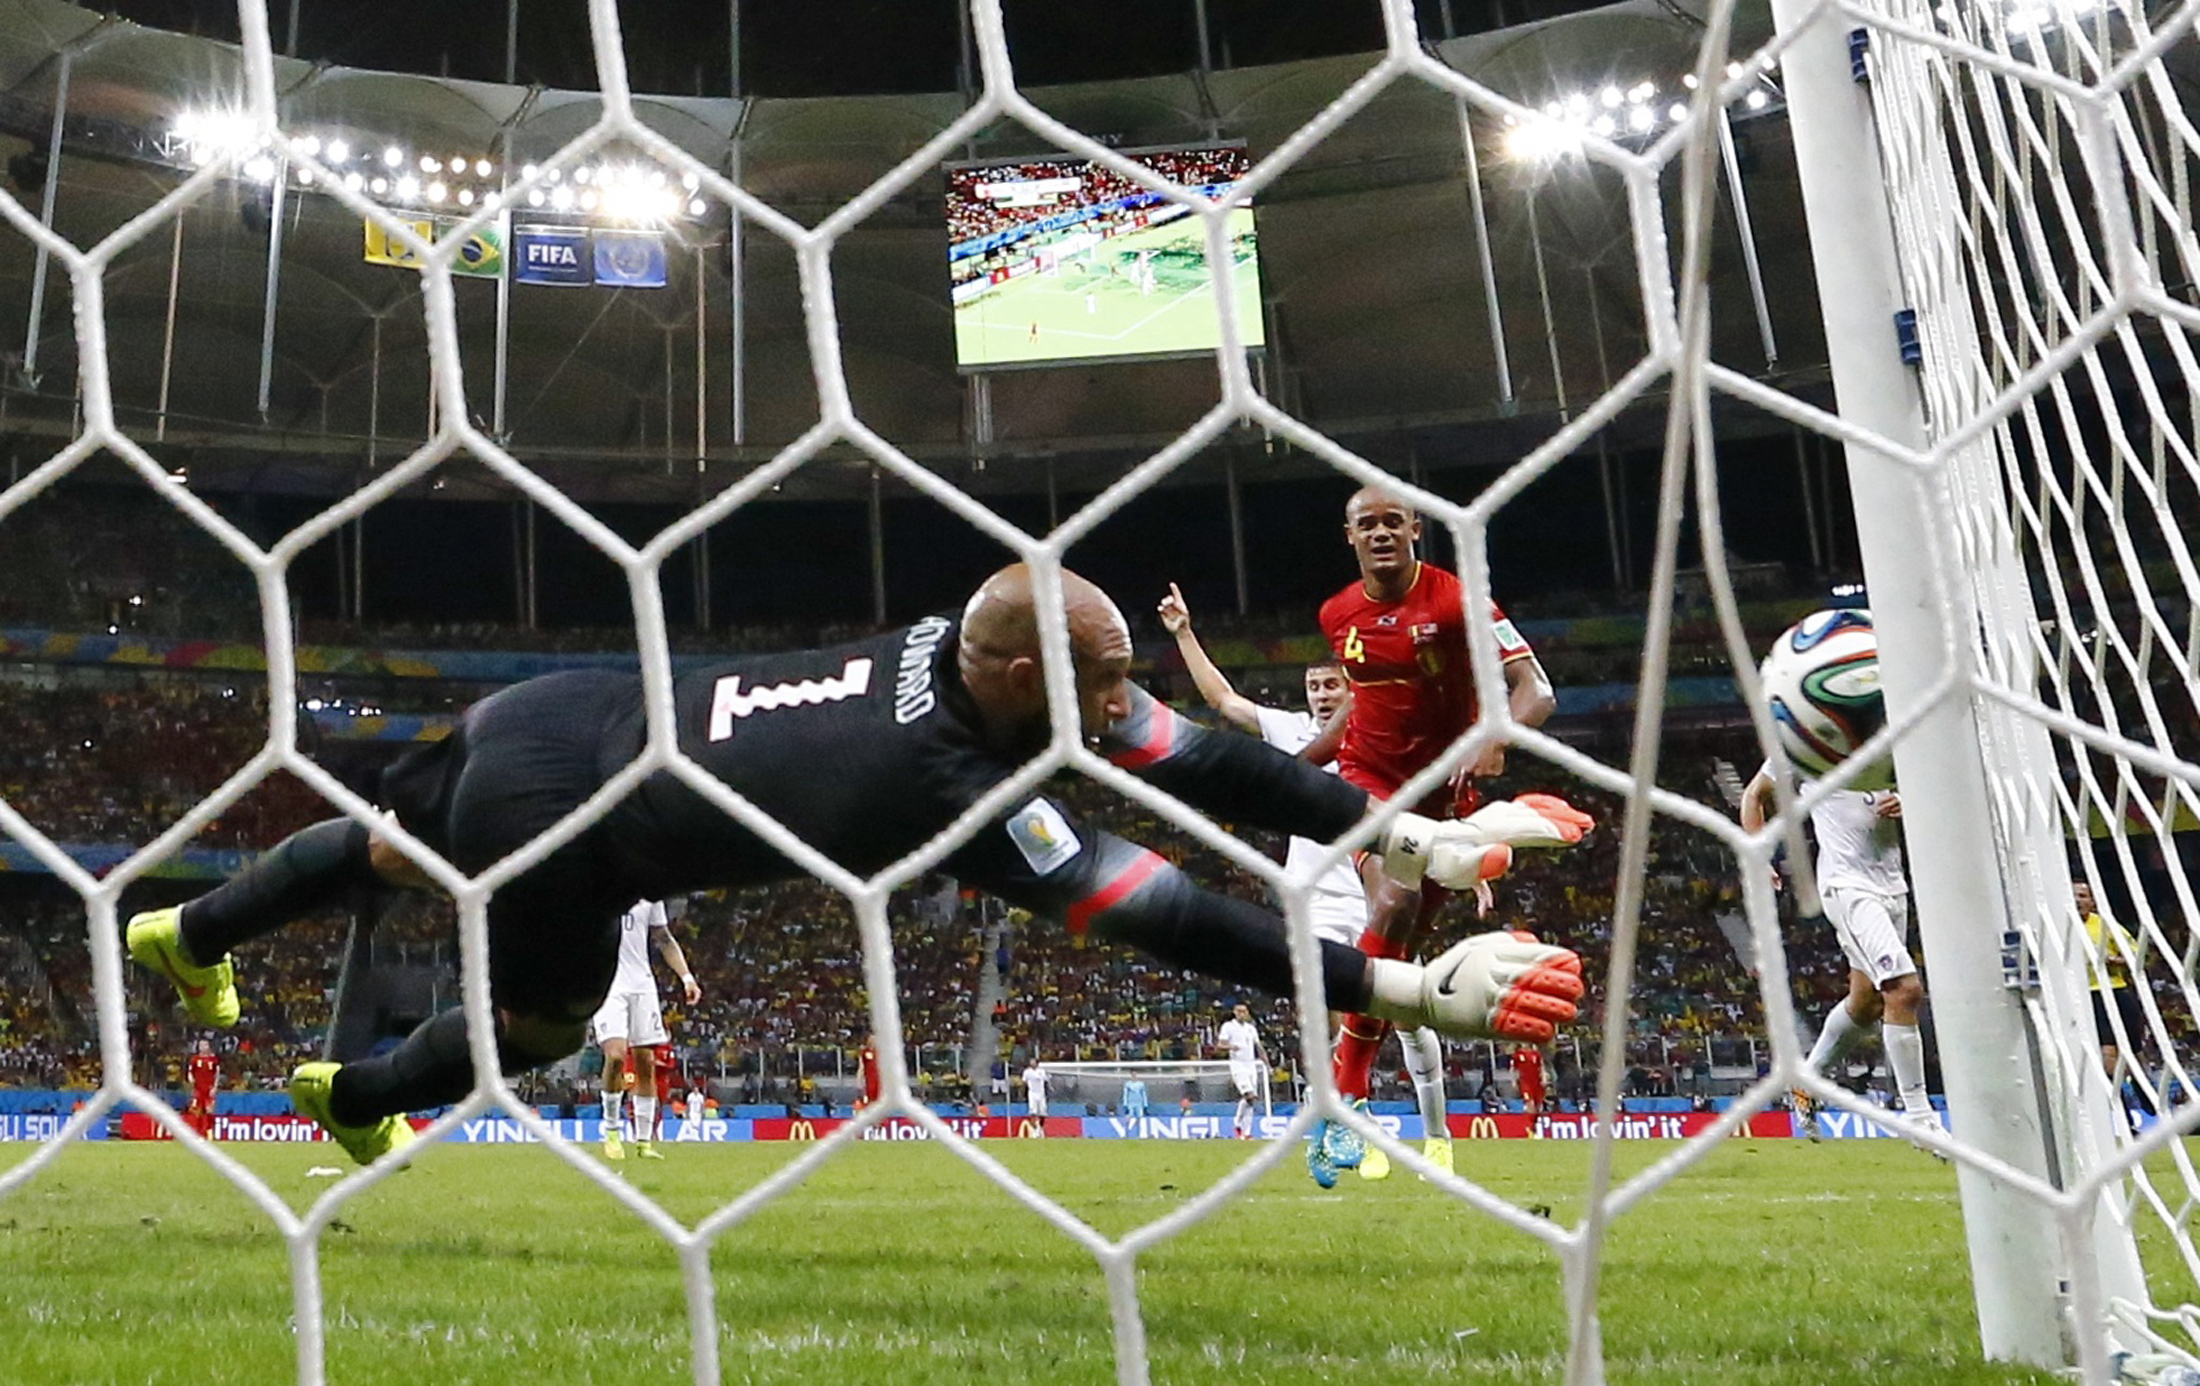 U.S. Goalkeeper Tim Howard blocks a shot from Belgium's Vincent Kompany during their World Cup match at the Fonte Nova arena in Salvador, Brazil, on July 1, 2014